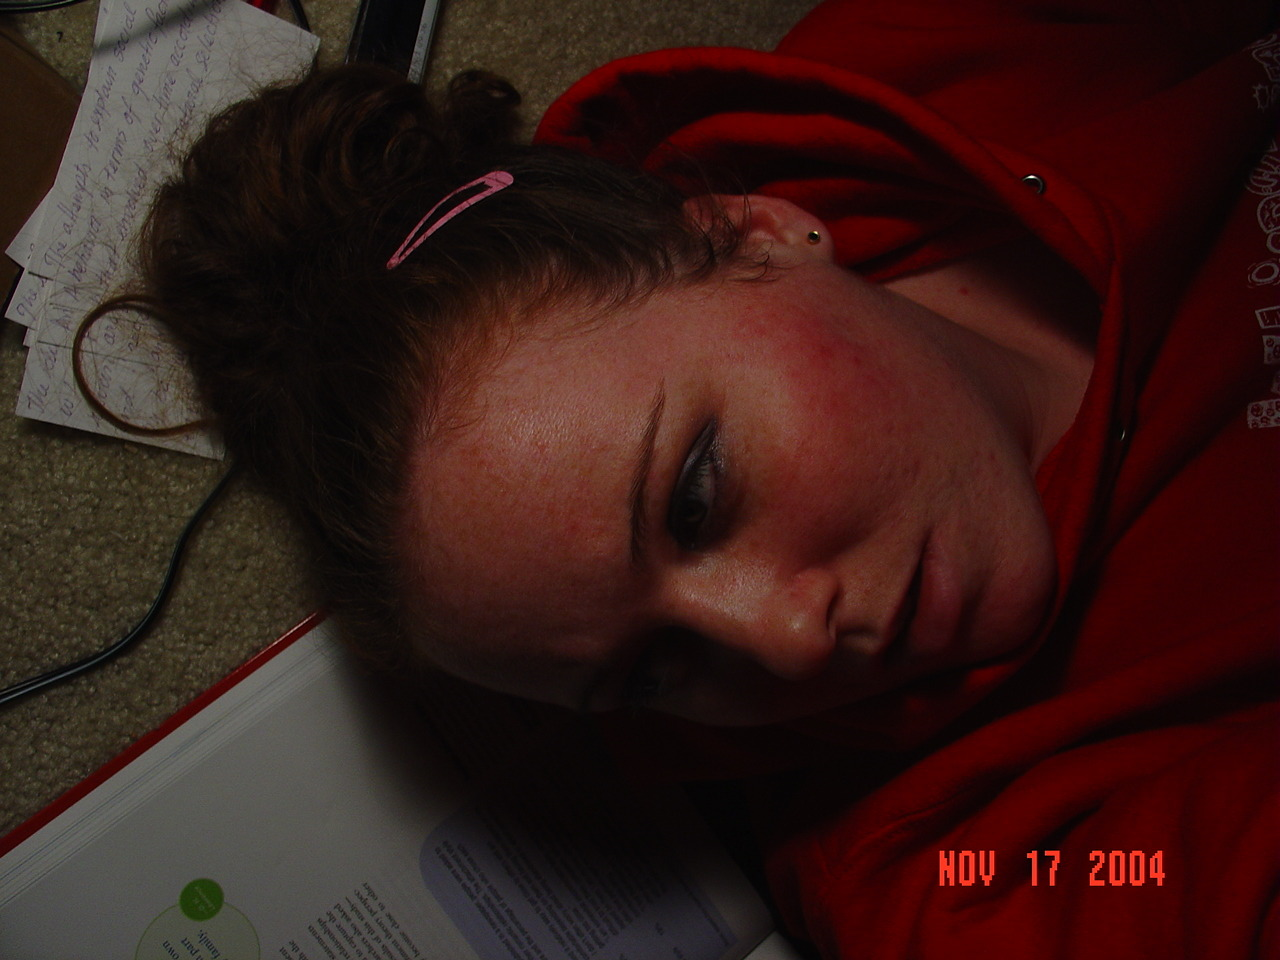 Studyin' is suh hard.